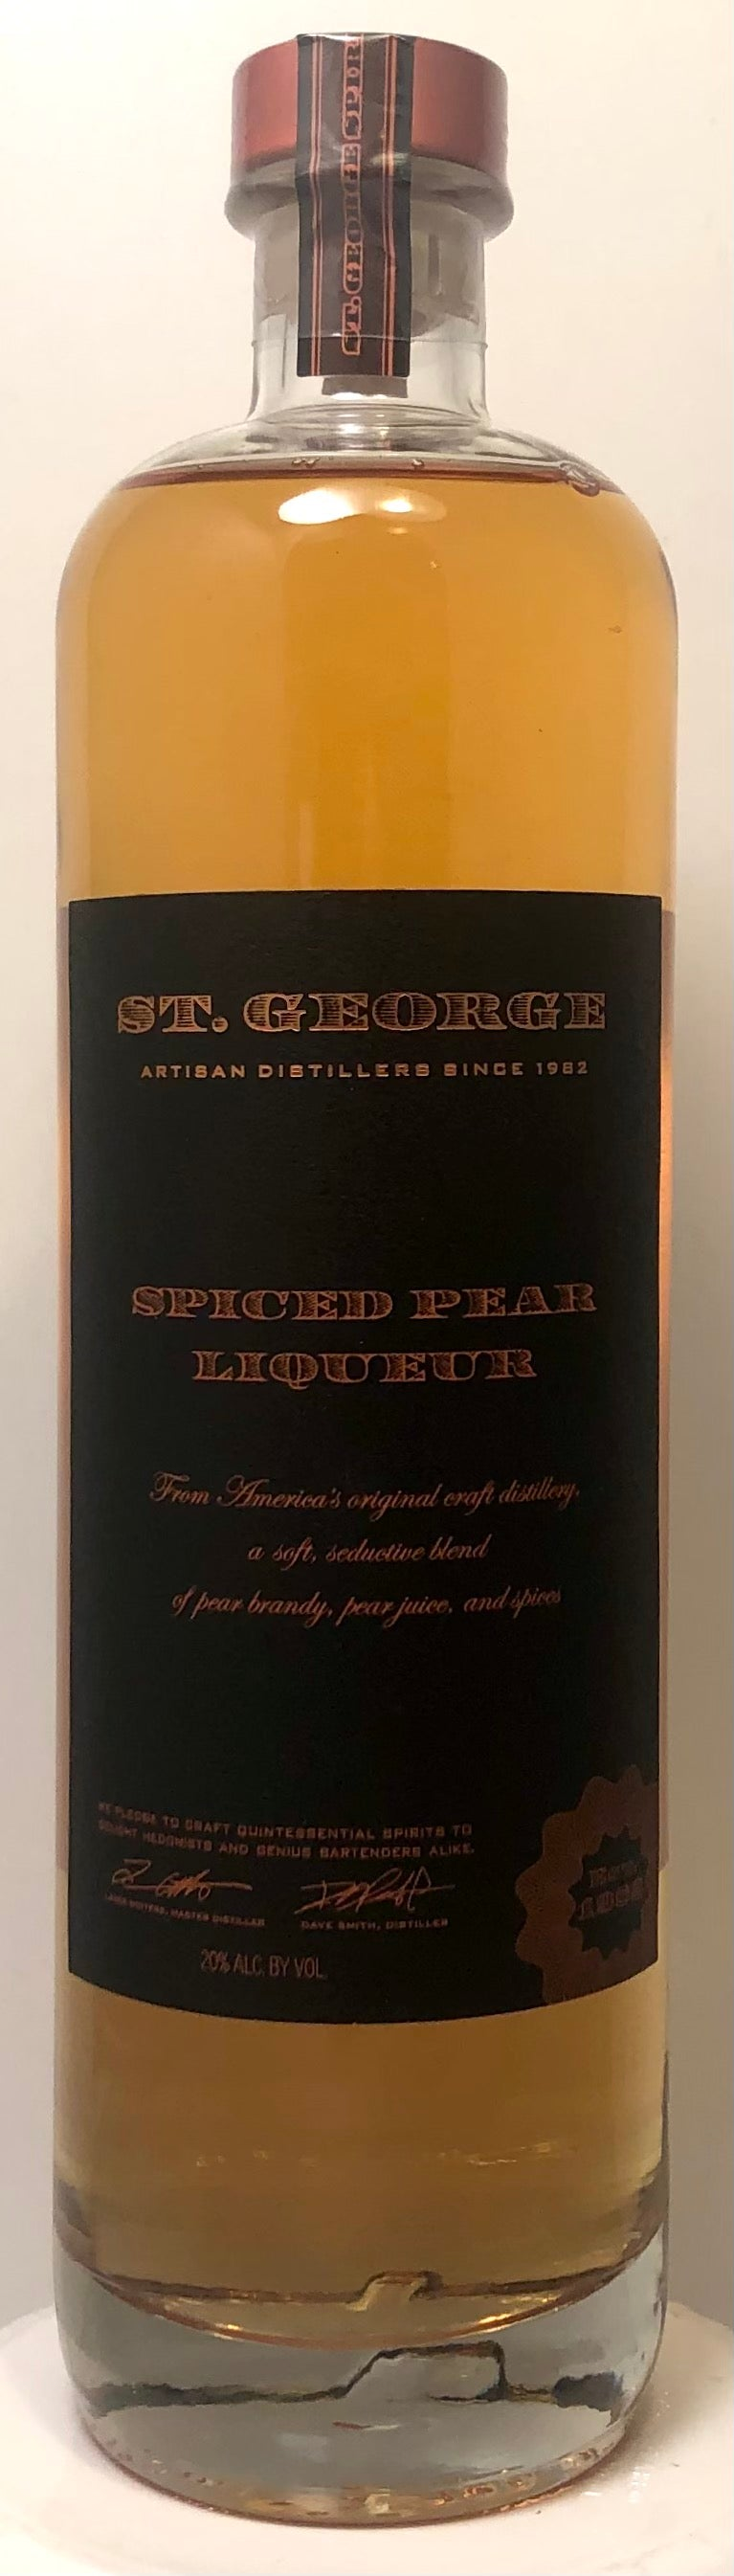 Spiced Pear Liqueur 750ml